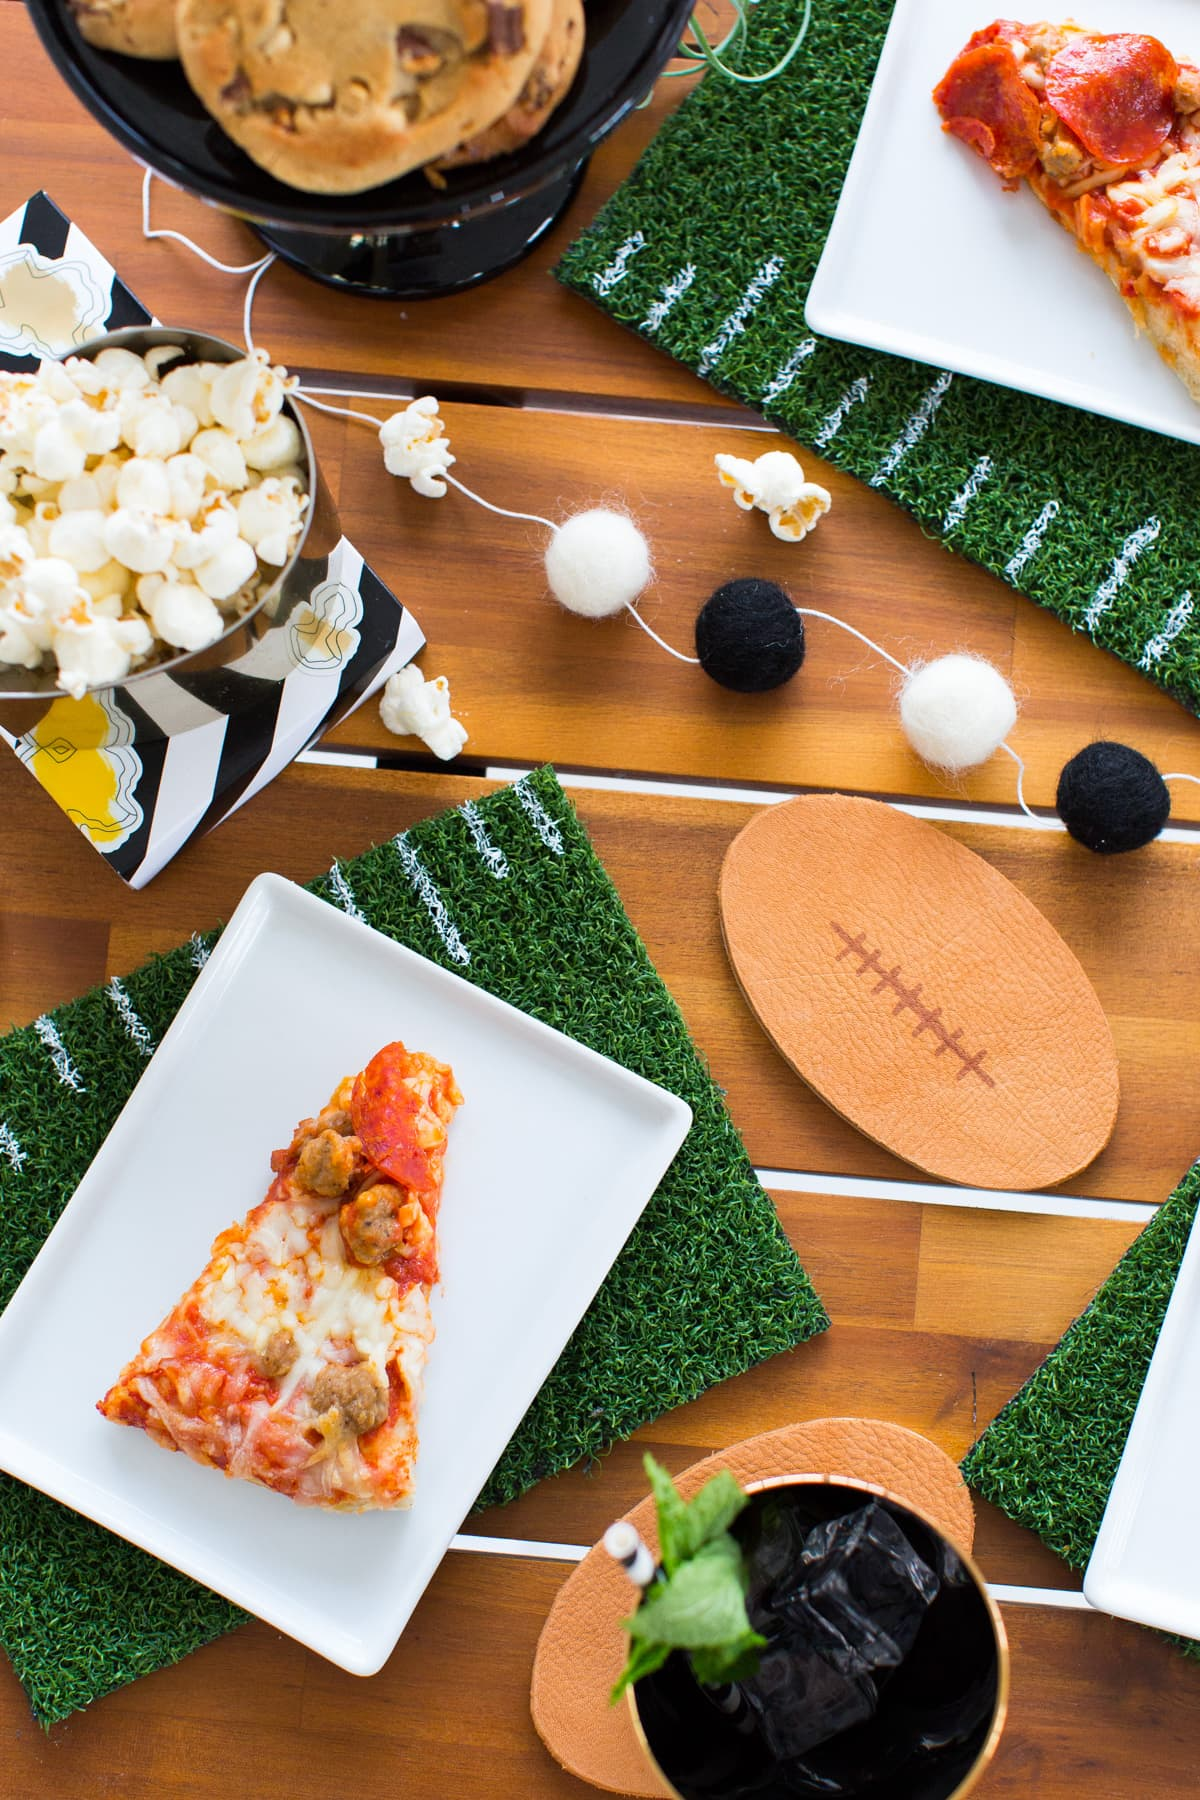 We're prepping for game day with these DIY Football Coasters & Placemats on Sugar & Cloth! - Best DIY blog 2015 - Nominated for Best Entertaining Blog - Ashley Rose